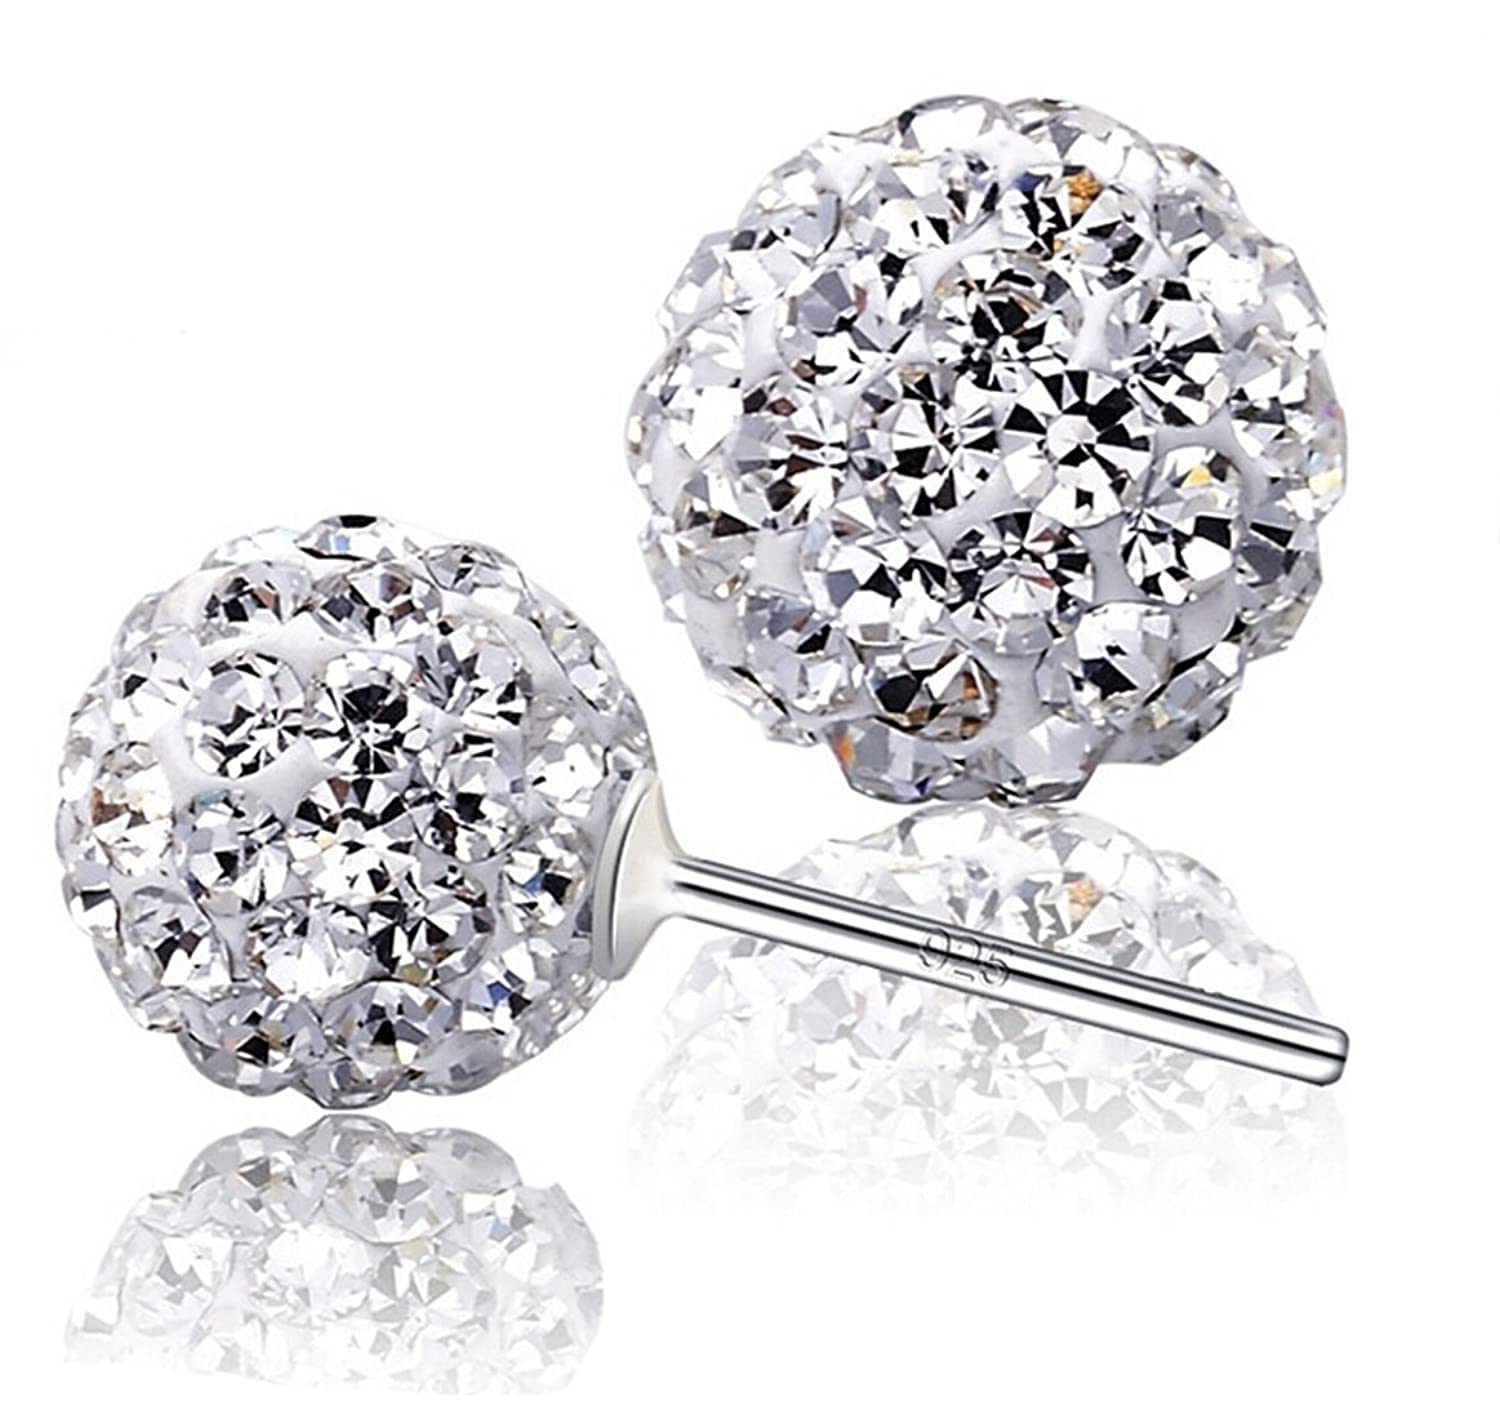 Sterling Silver Cubic Zirconia Crystal Ball Stud Earrings Amazon